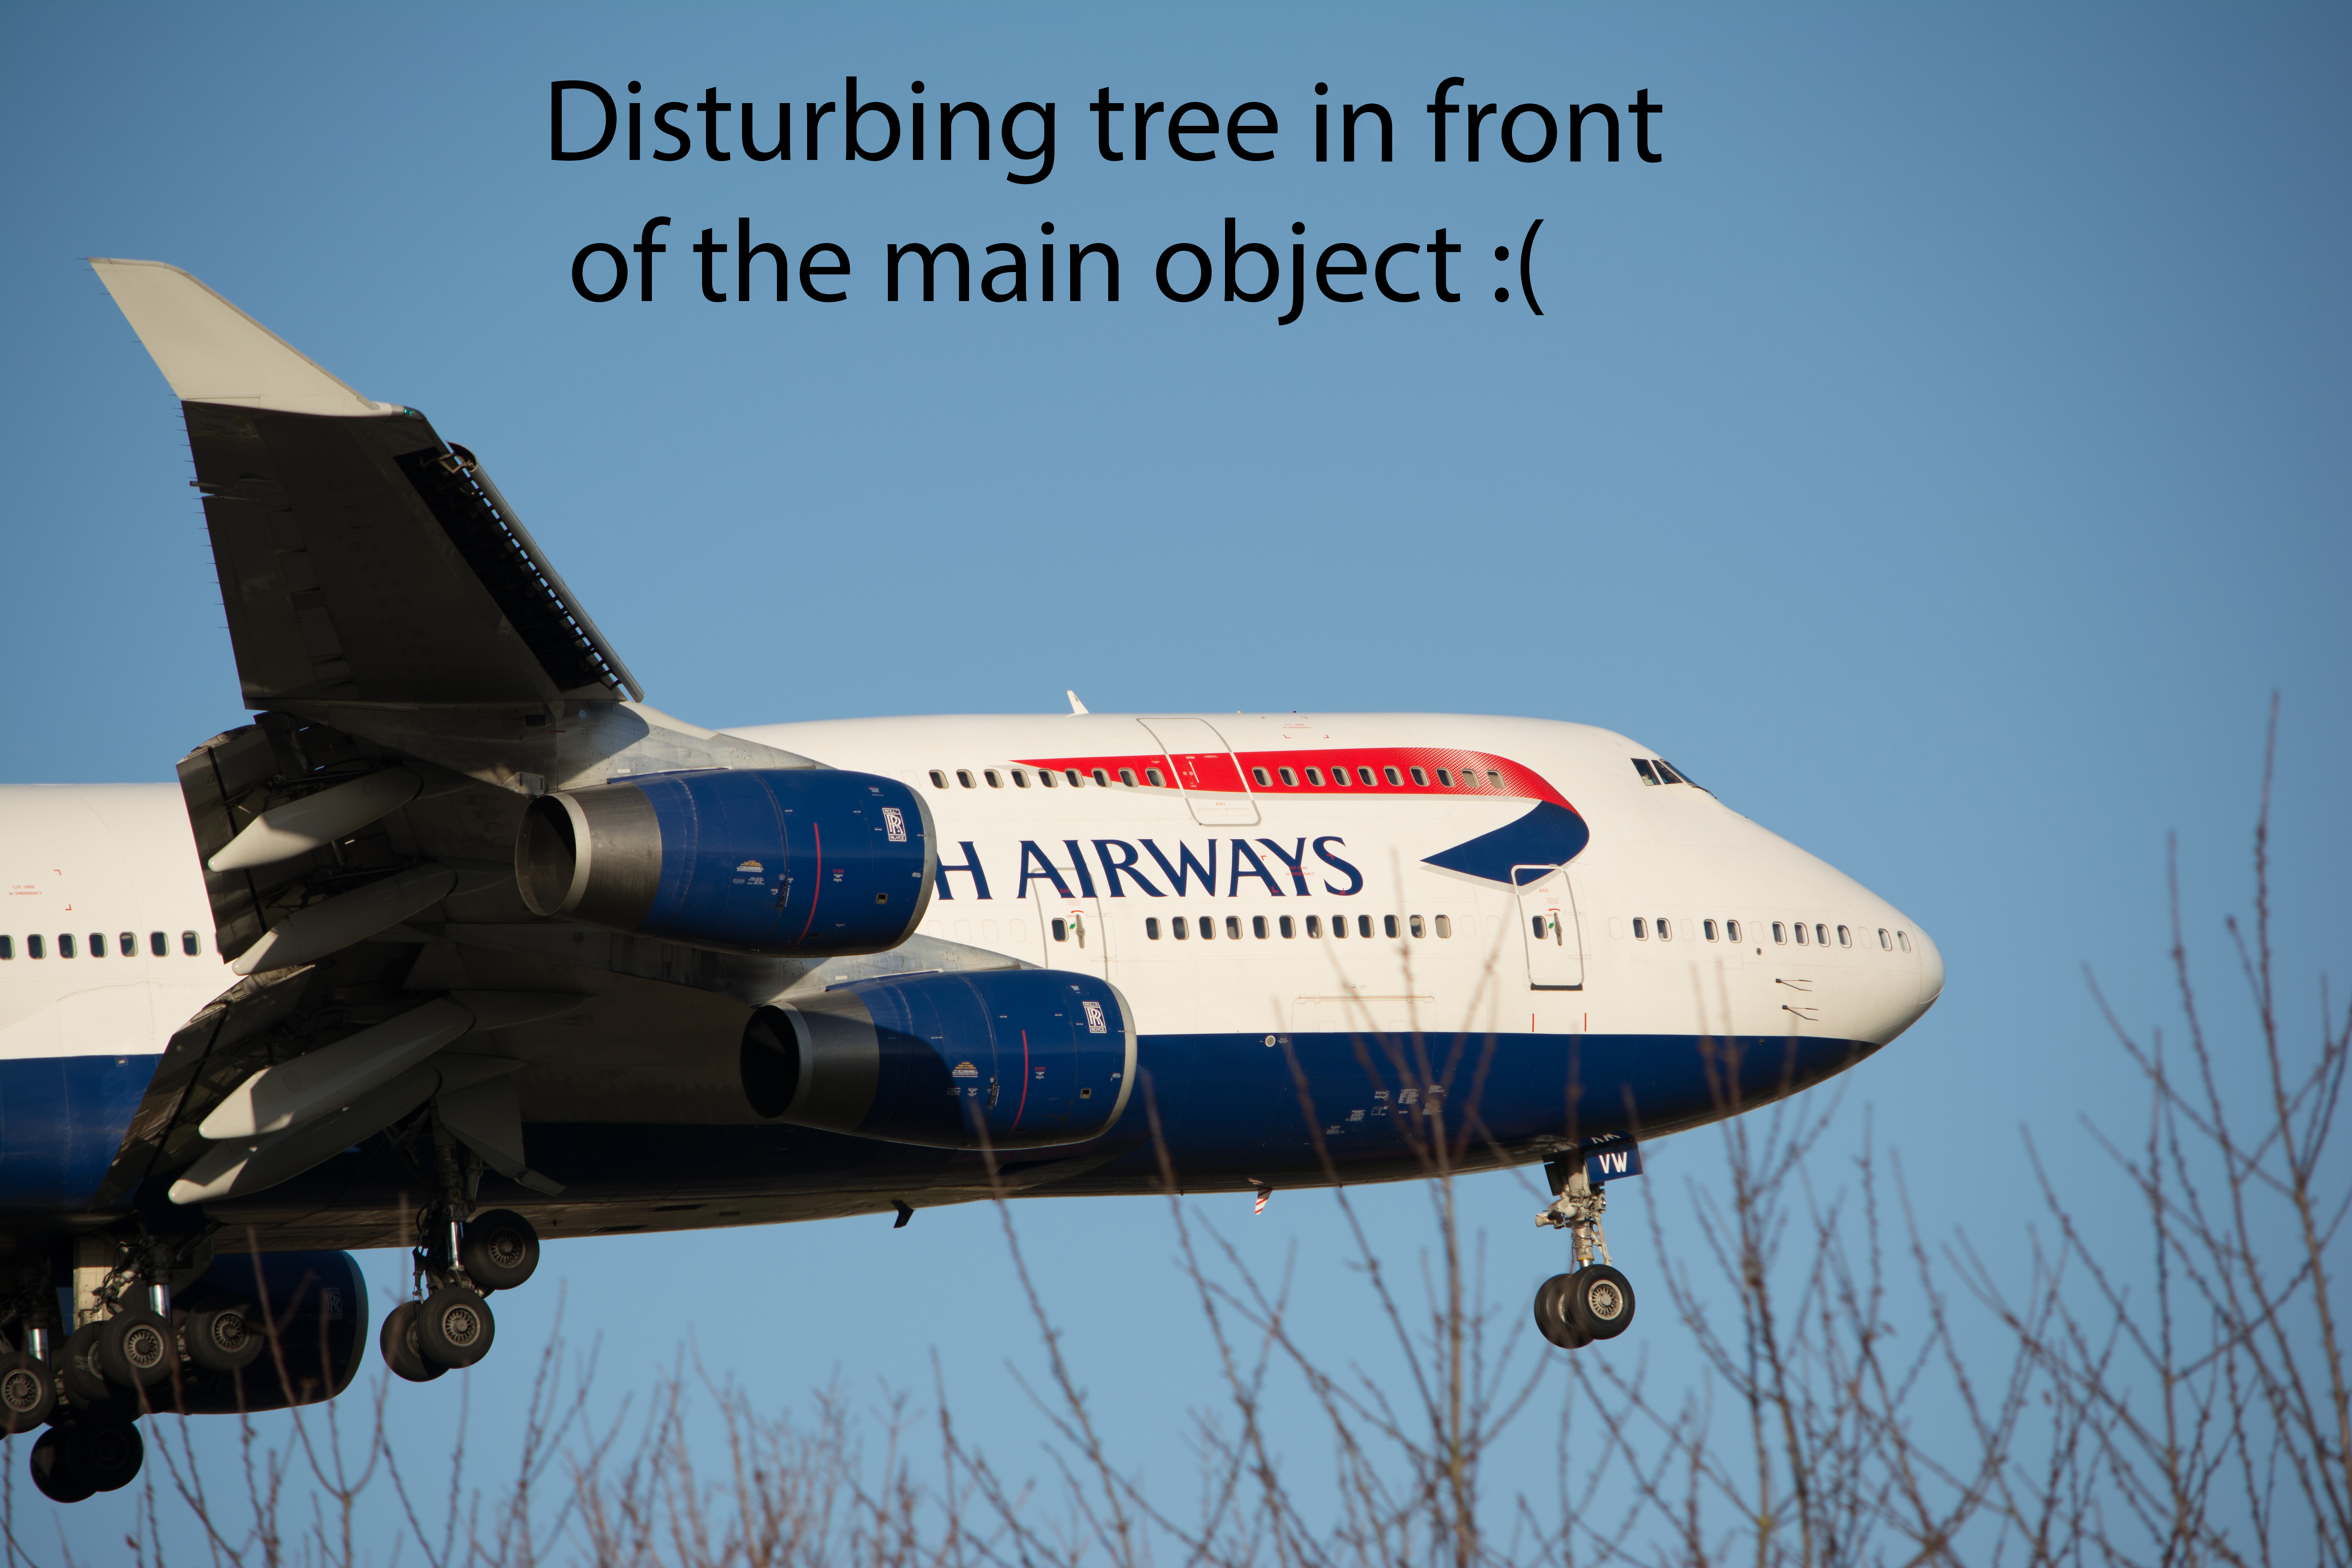 British Airways 747 - Disturbing tree in front of the main object :(